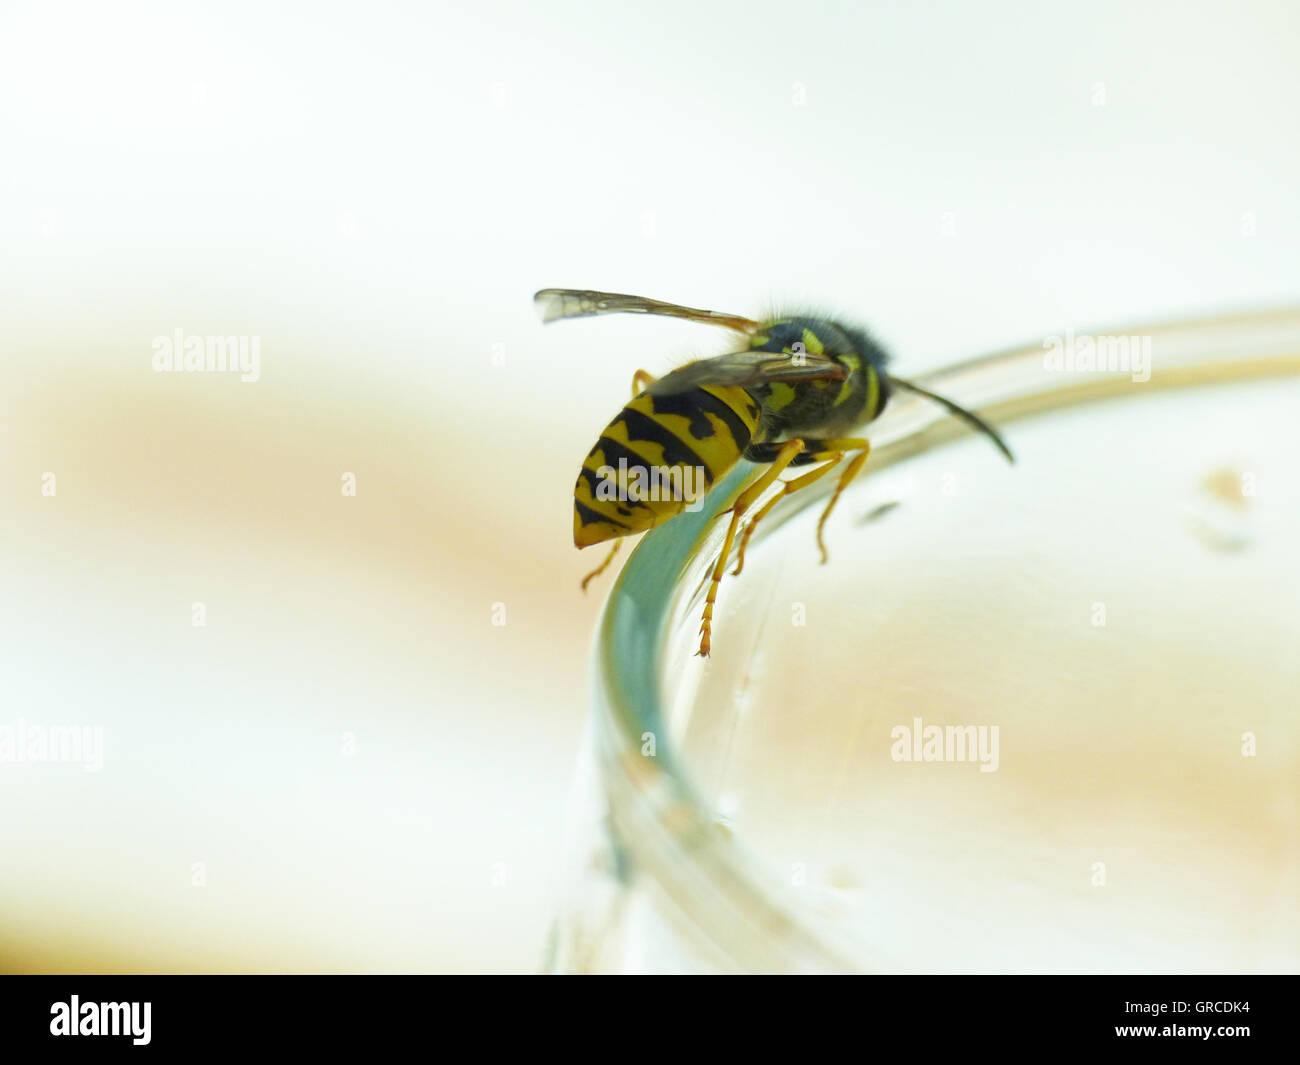 Wasp On Glass Stock Photos & Wasp On Glass Stock Images - Alamy